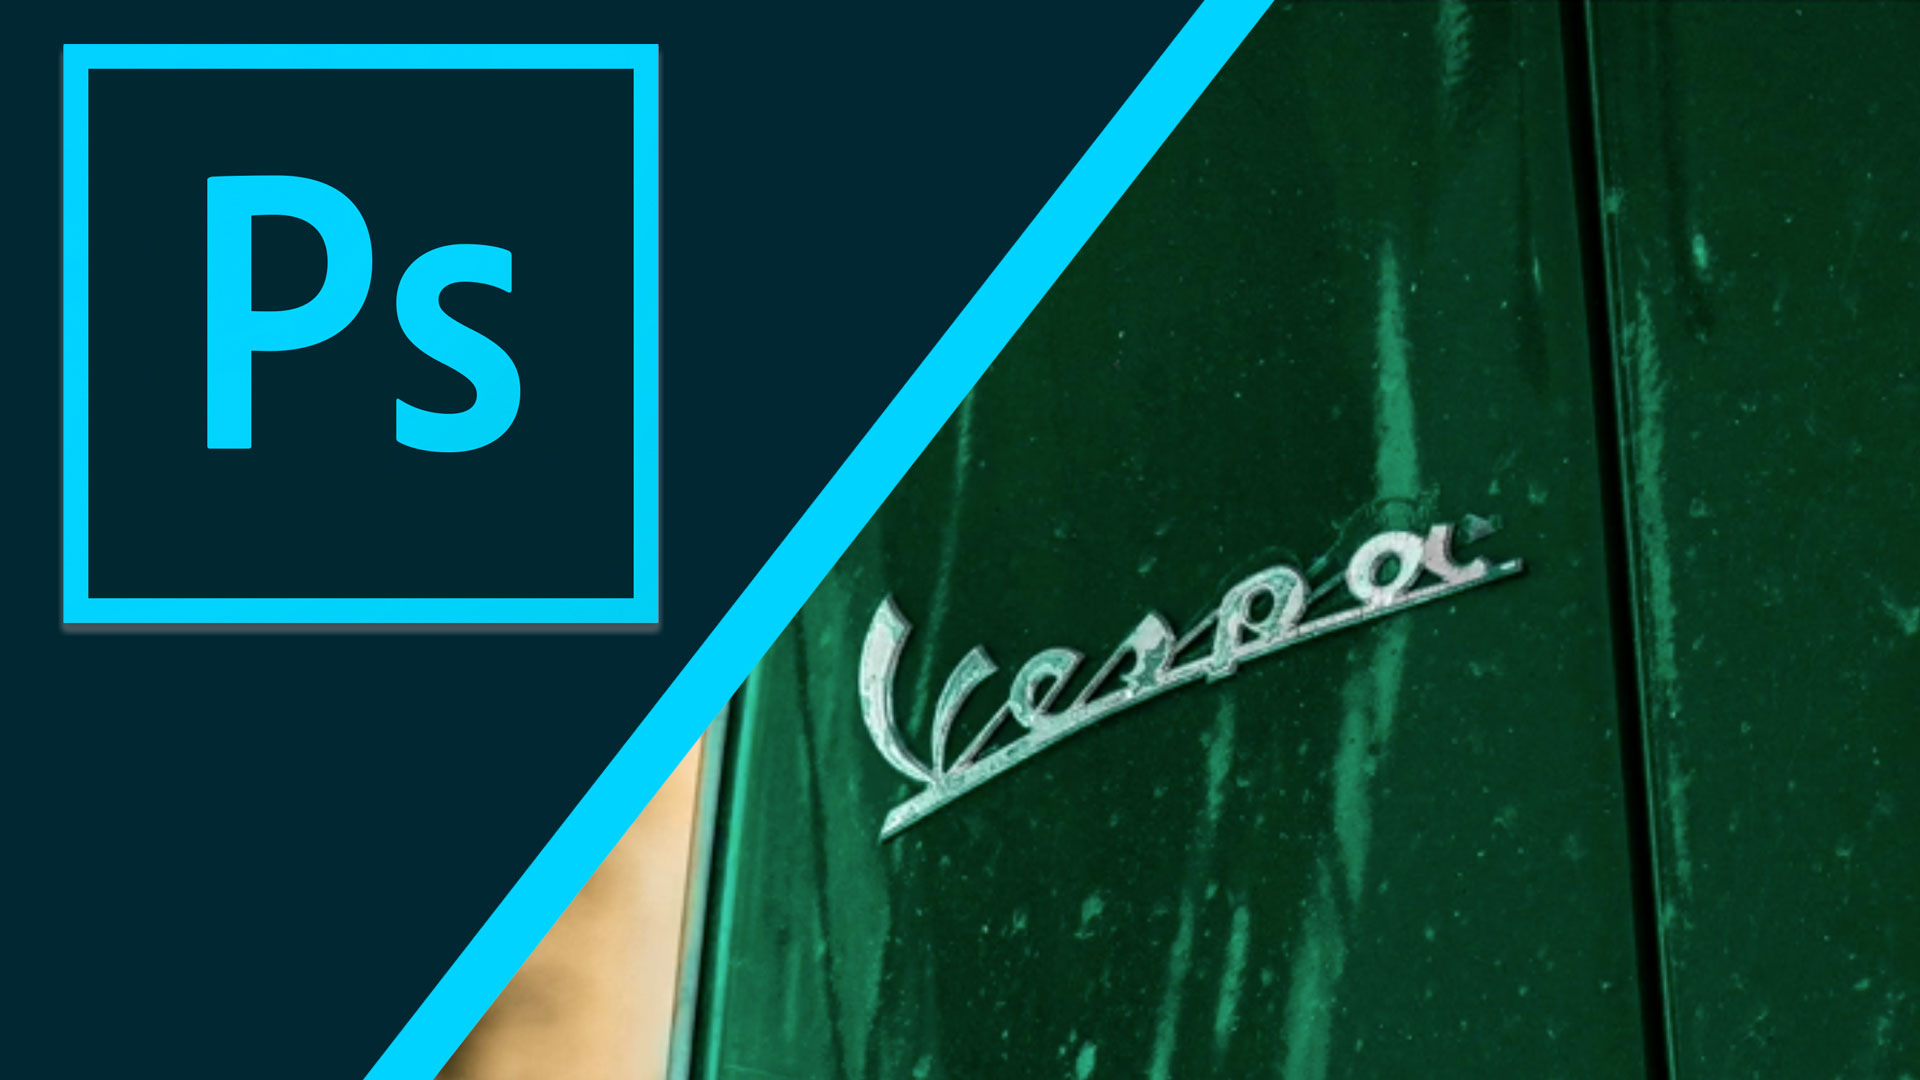 Using blending modes and adjustment layers in Photoshop